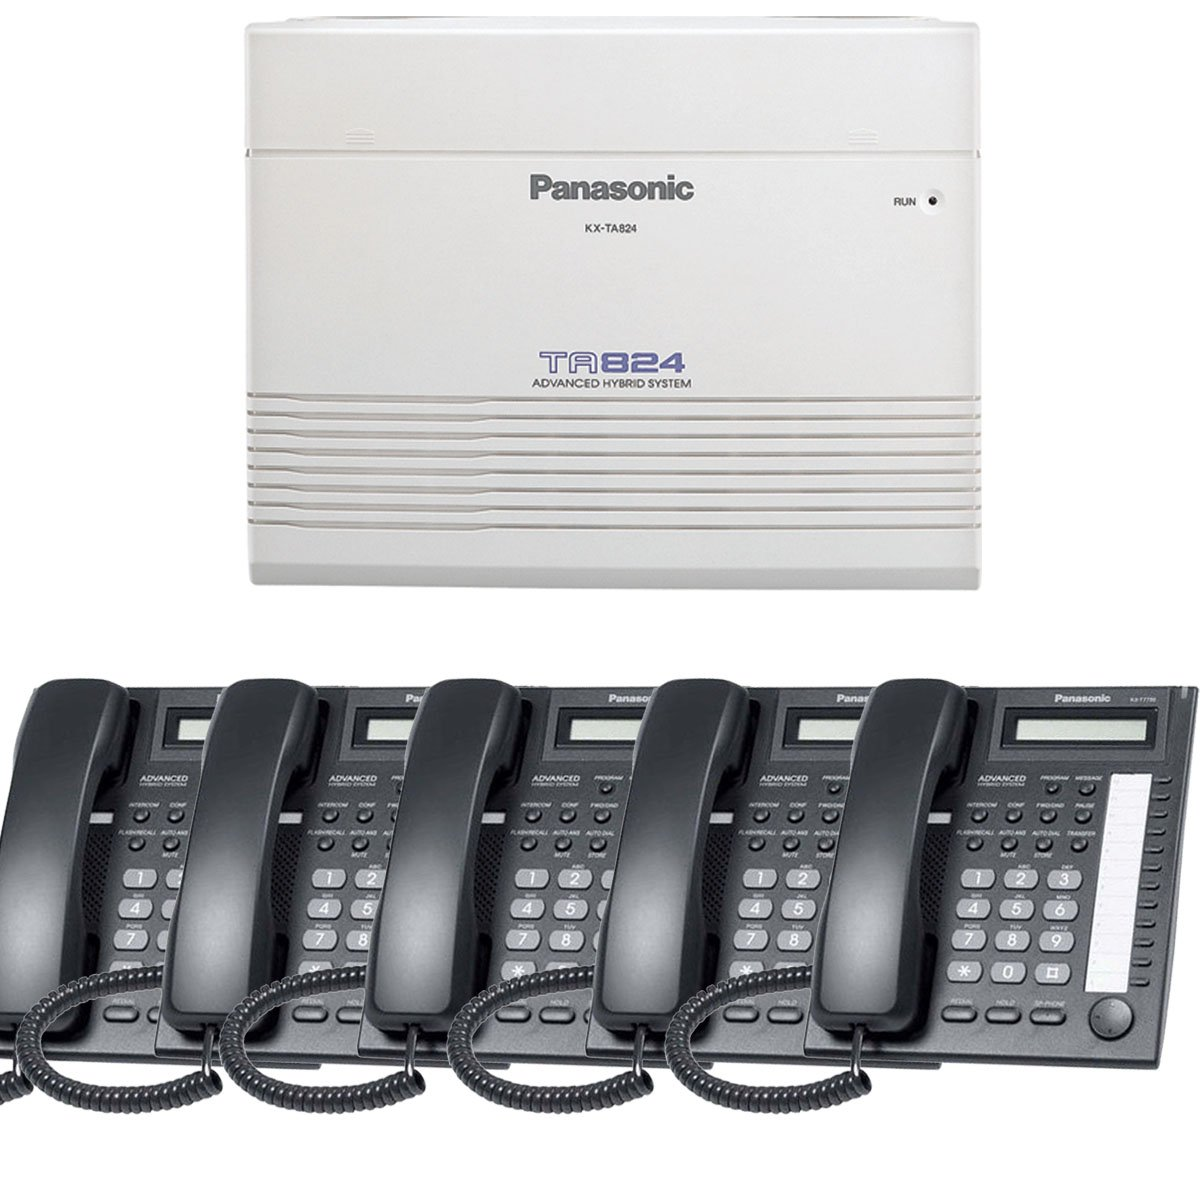 Panasonic Small Office Business Phone System Bundle Brand New includiing KX-T7730 5 Phones Black and KX-TA824 PBX Advanced Phone System